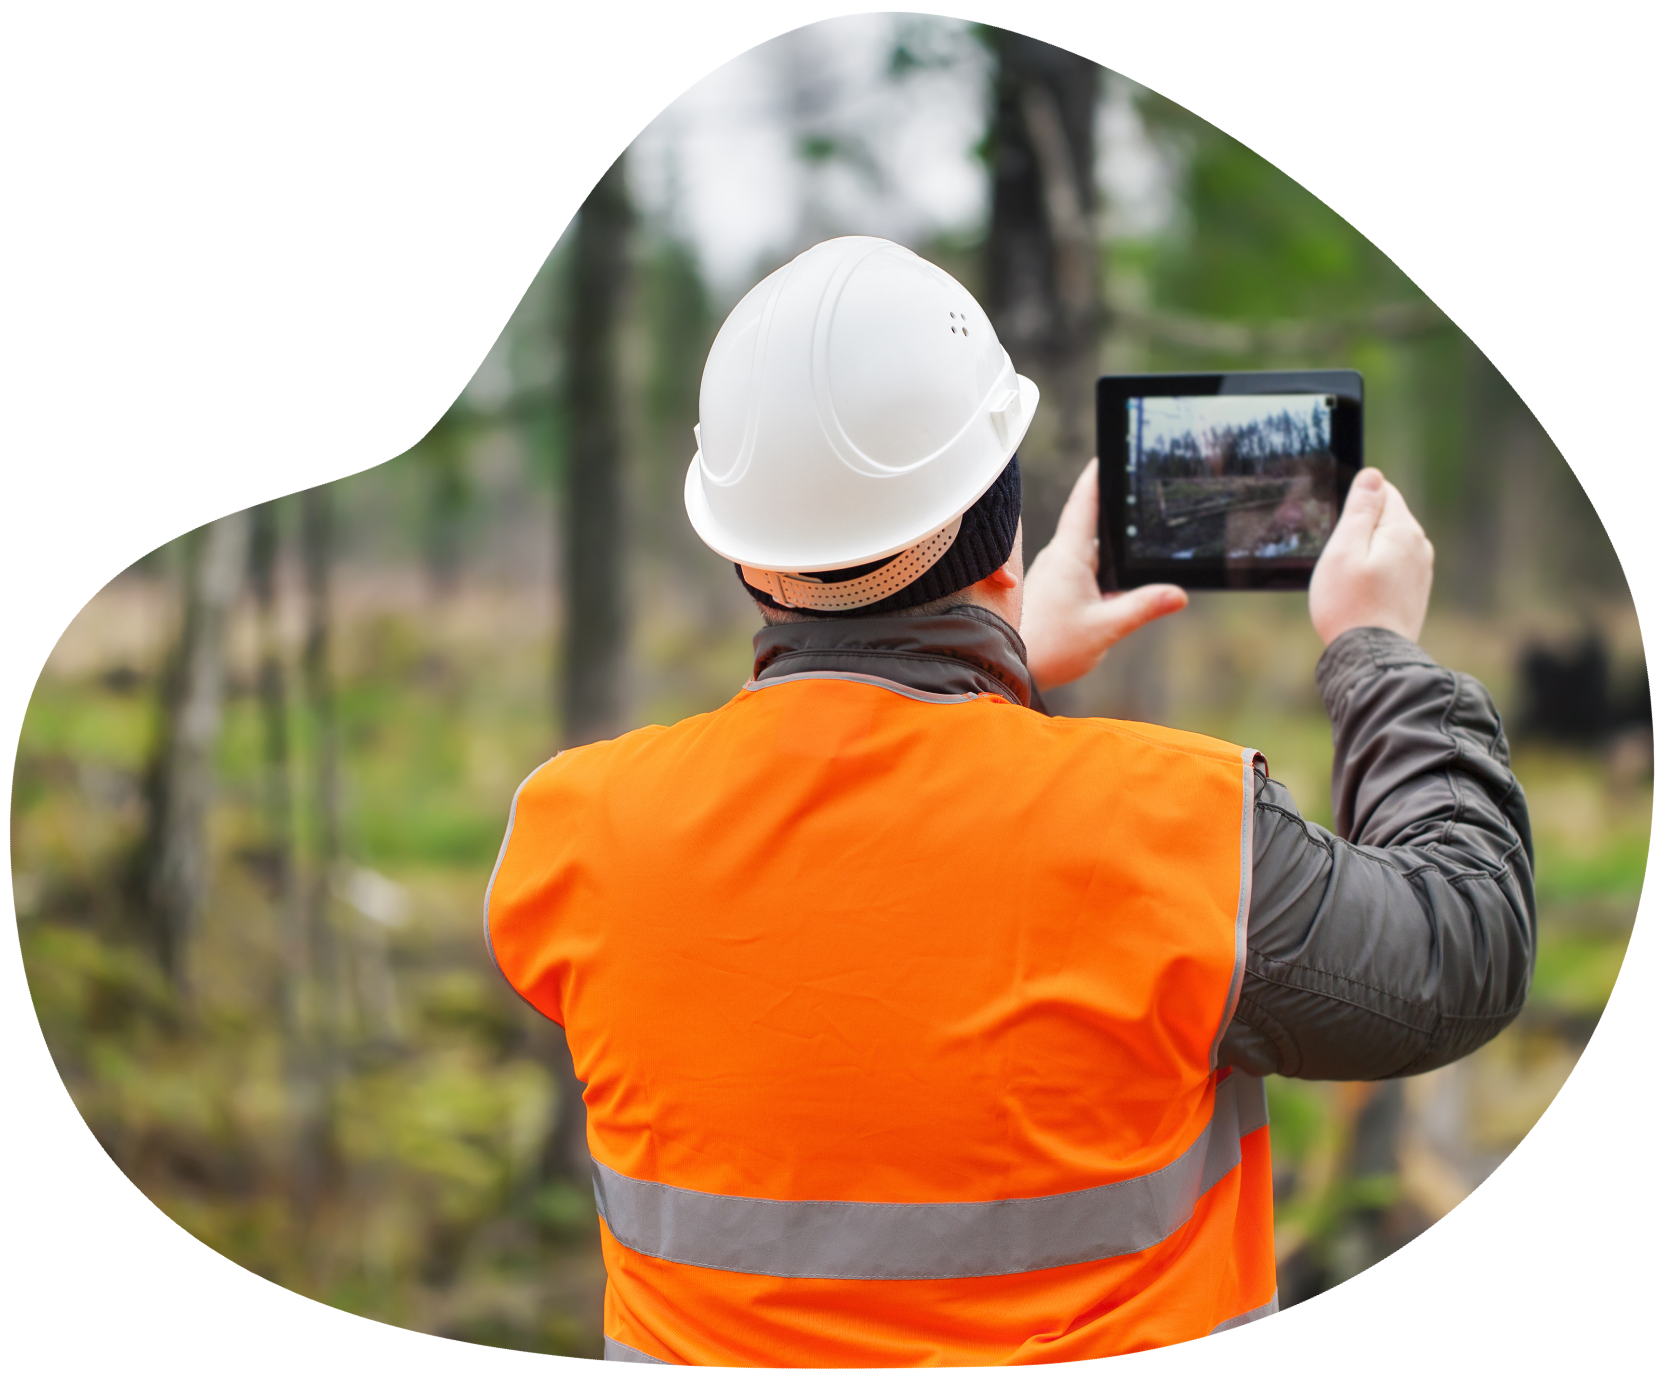 Person in hardhat and vest measuring collecting environmental data